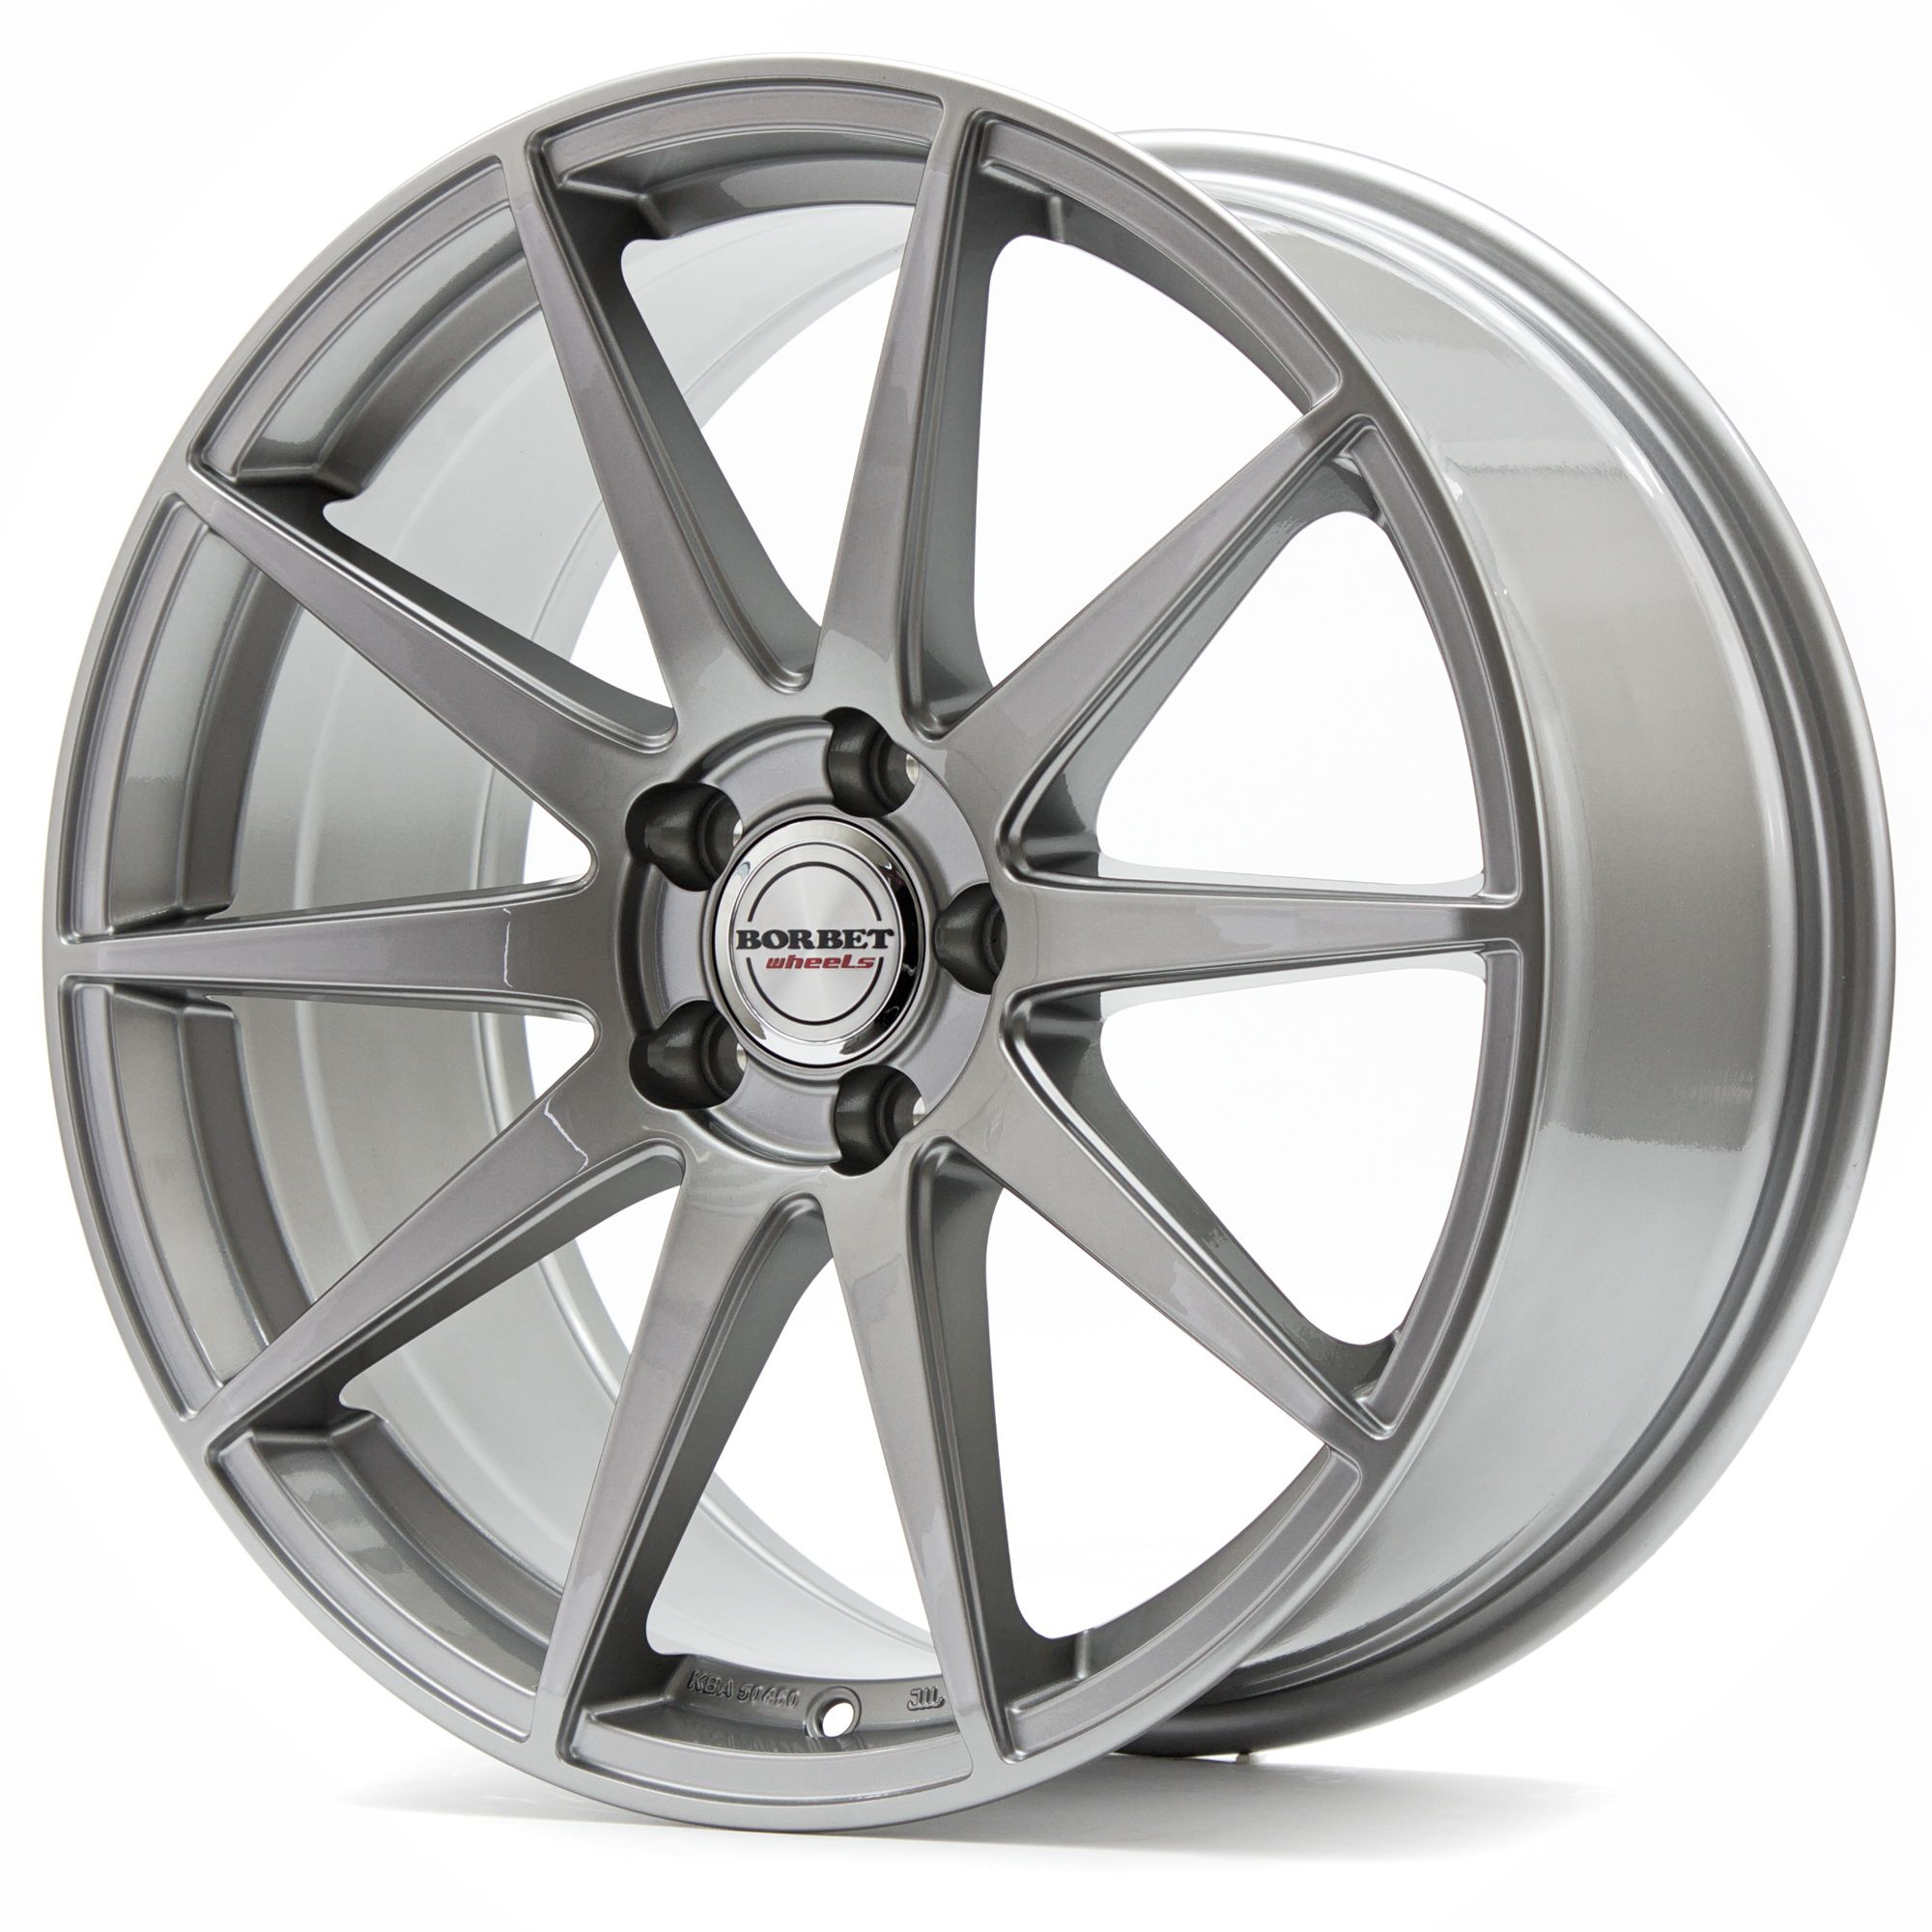 Литой Borbet GTX R20/8.5 PCD5*112 ET21 DIA66.5 Mistral Anthracite Glossy